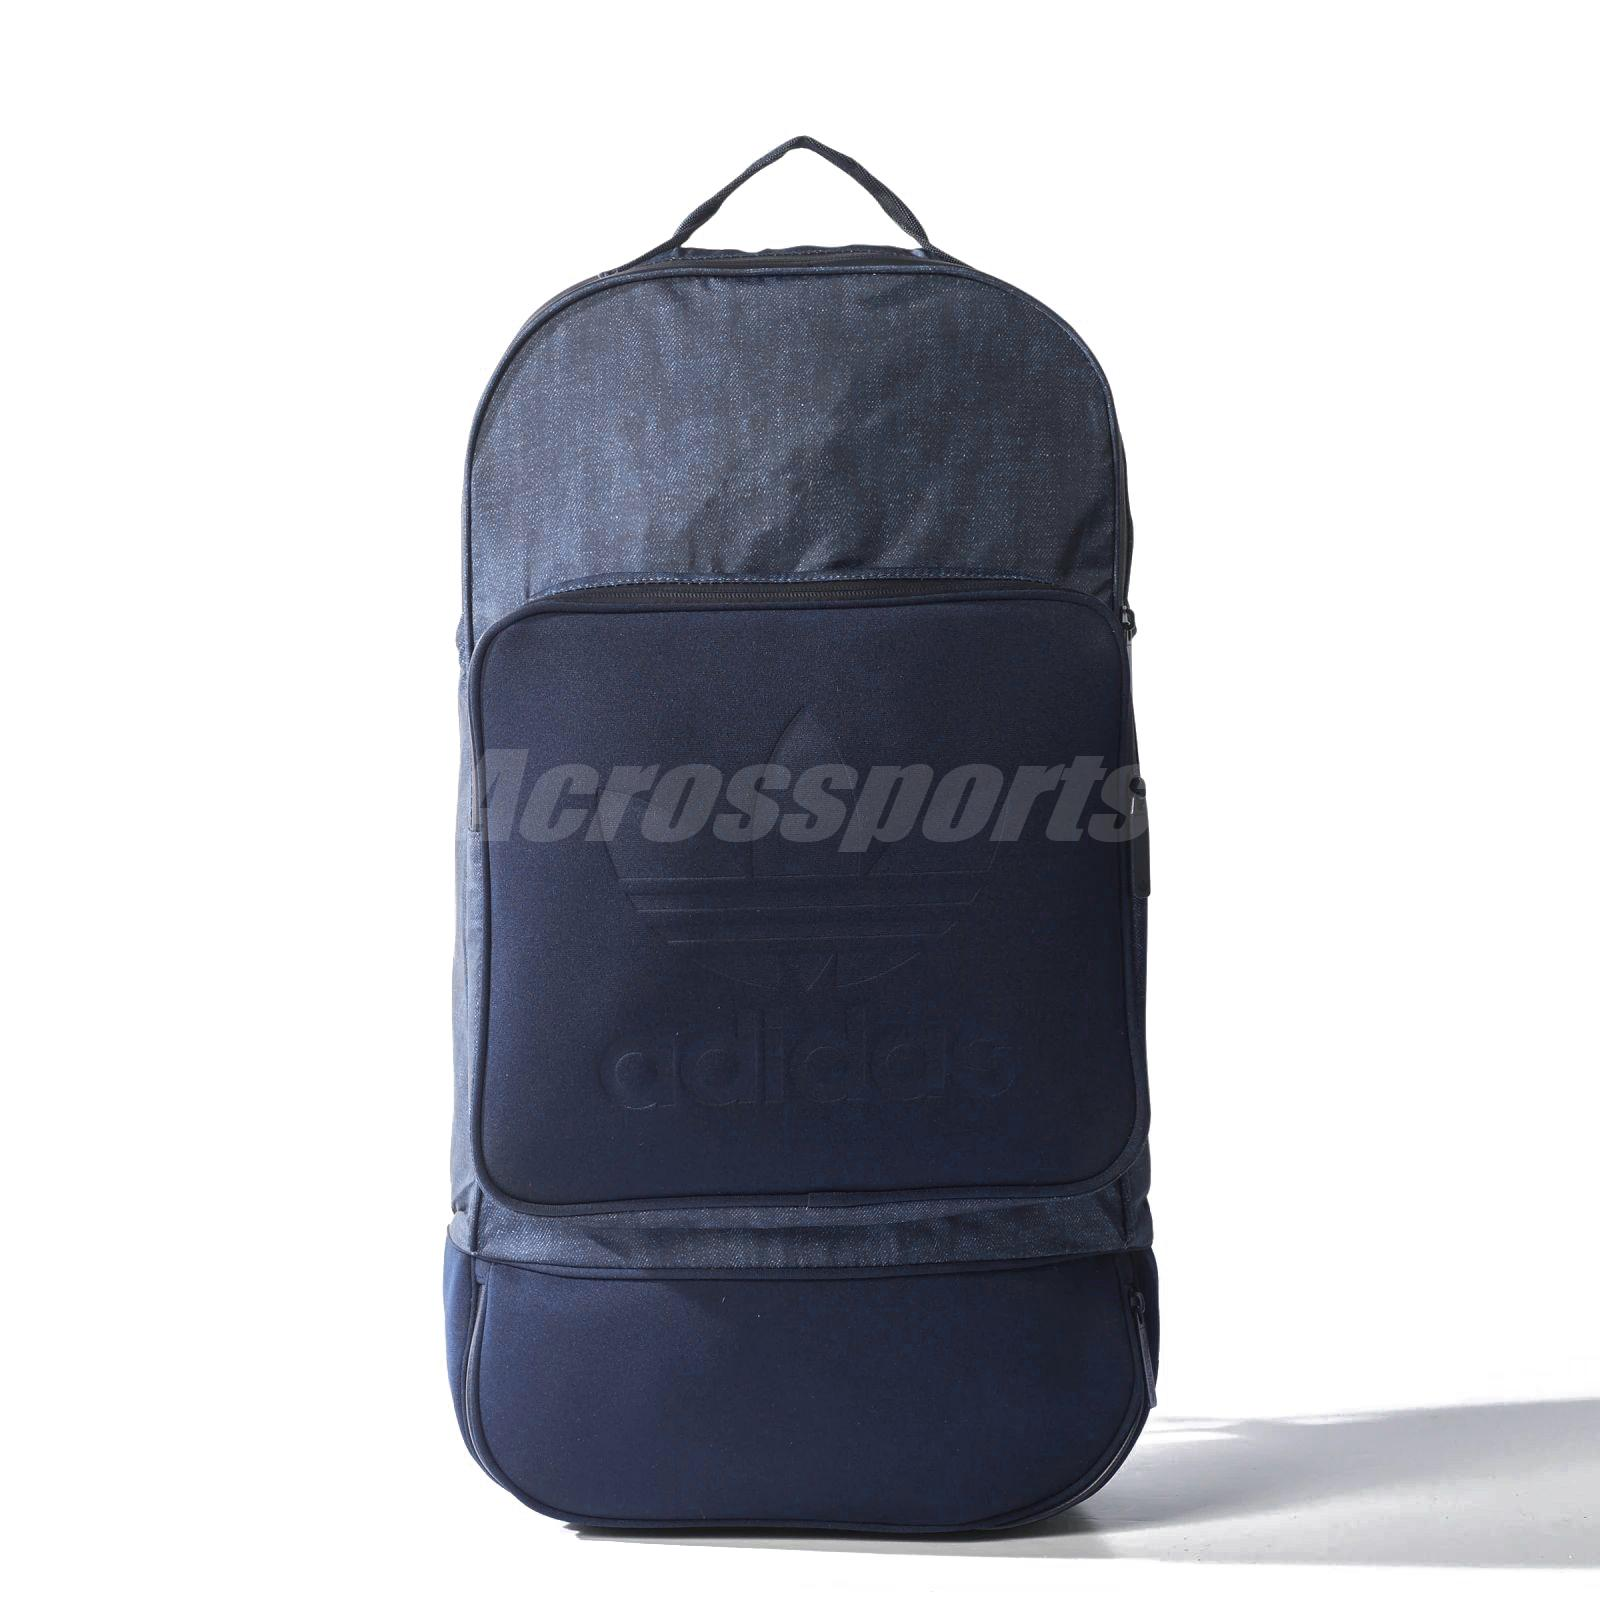 Bag Originals Training Indigo Details Backpack About Navy Bk6978 Mochila Street Shoes Adidas 0nOPXZ8kNw